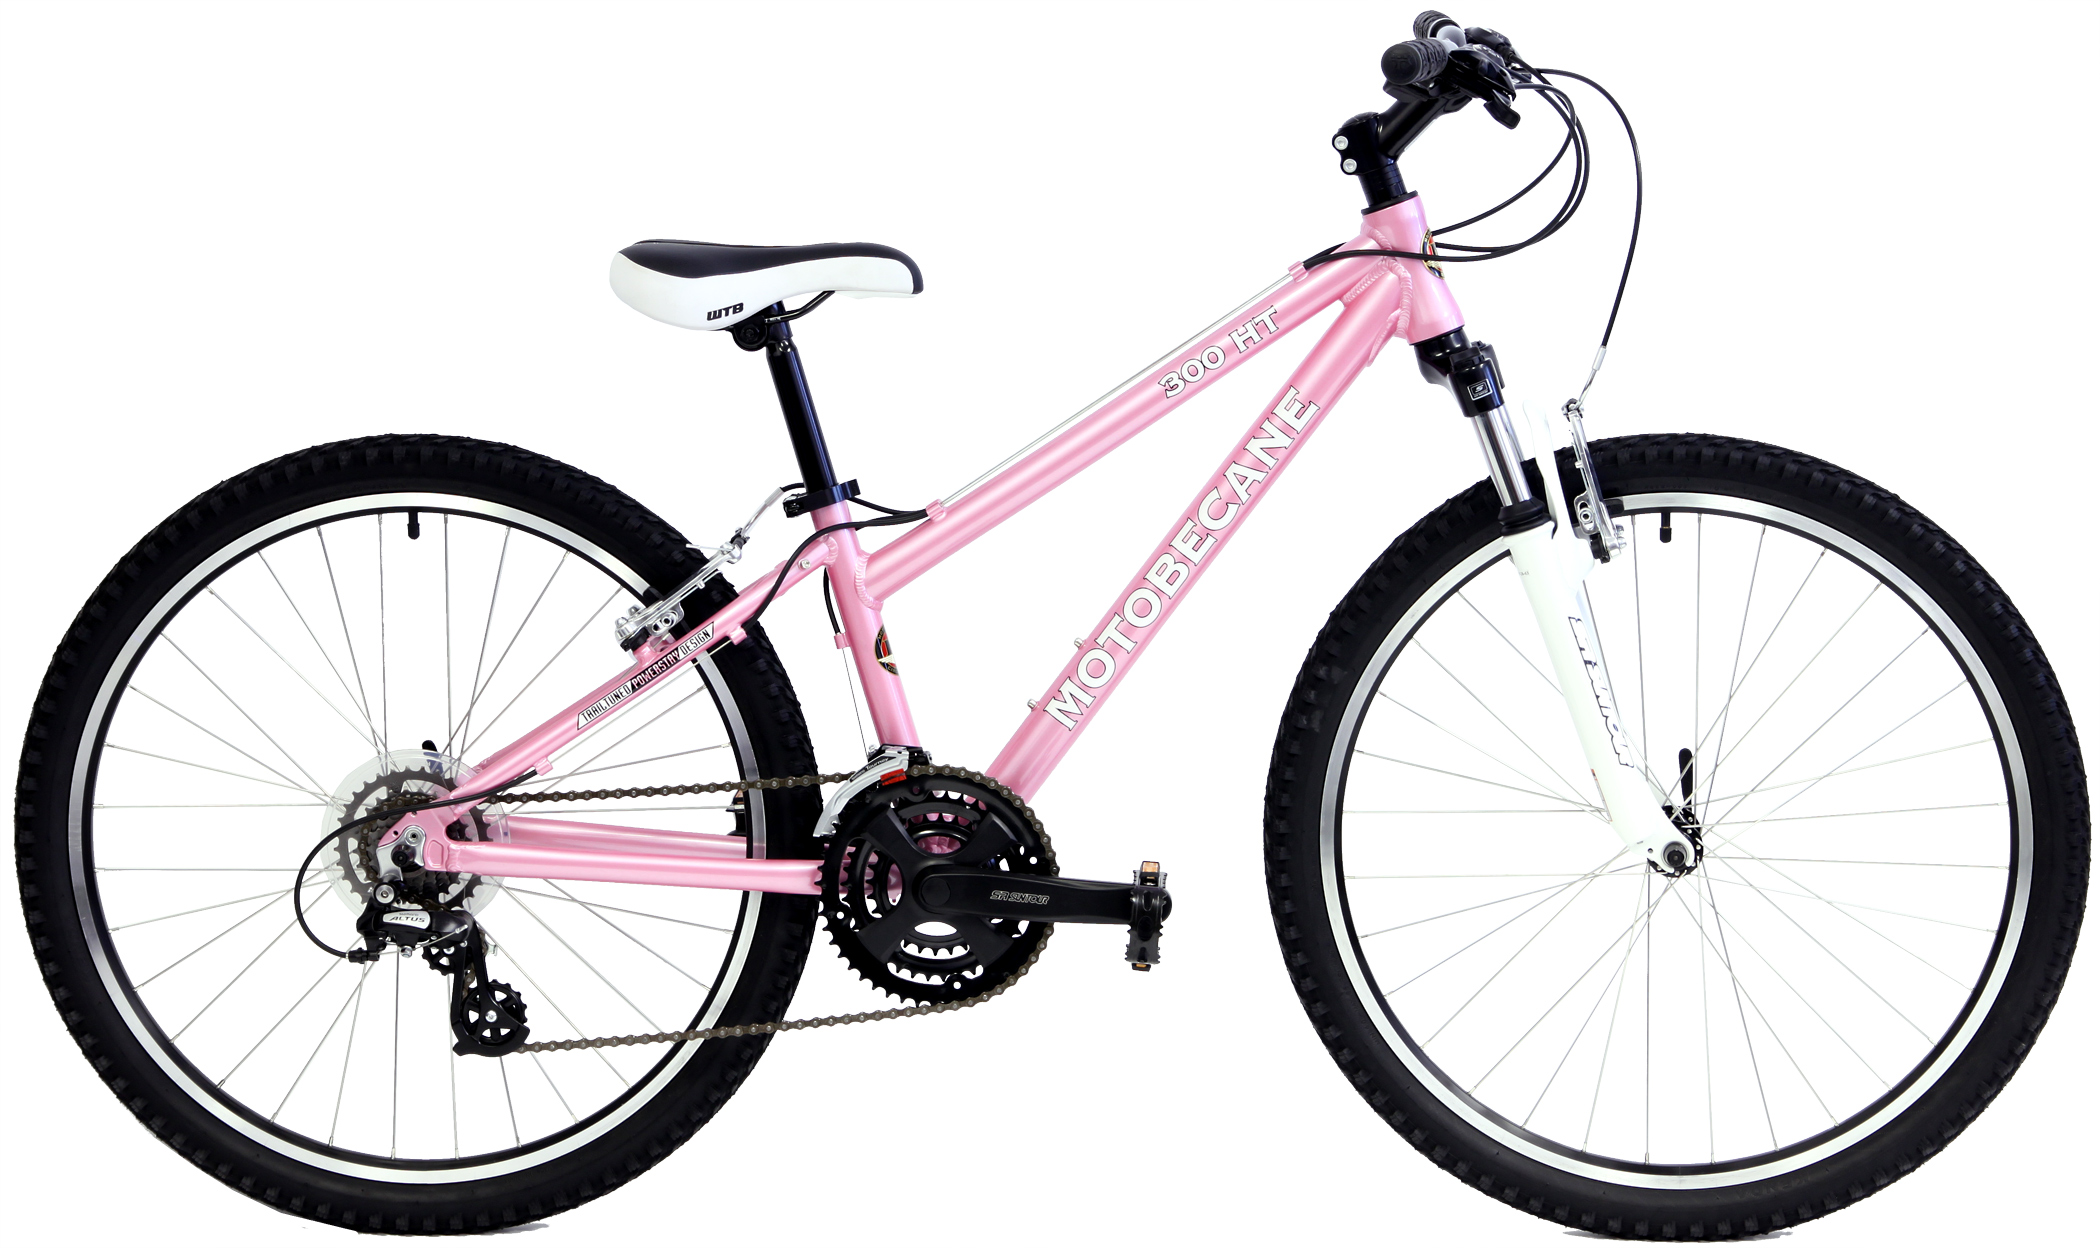 300HTW - WOMEN'S SPECIFIC MOUNTAIN BIKE